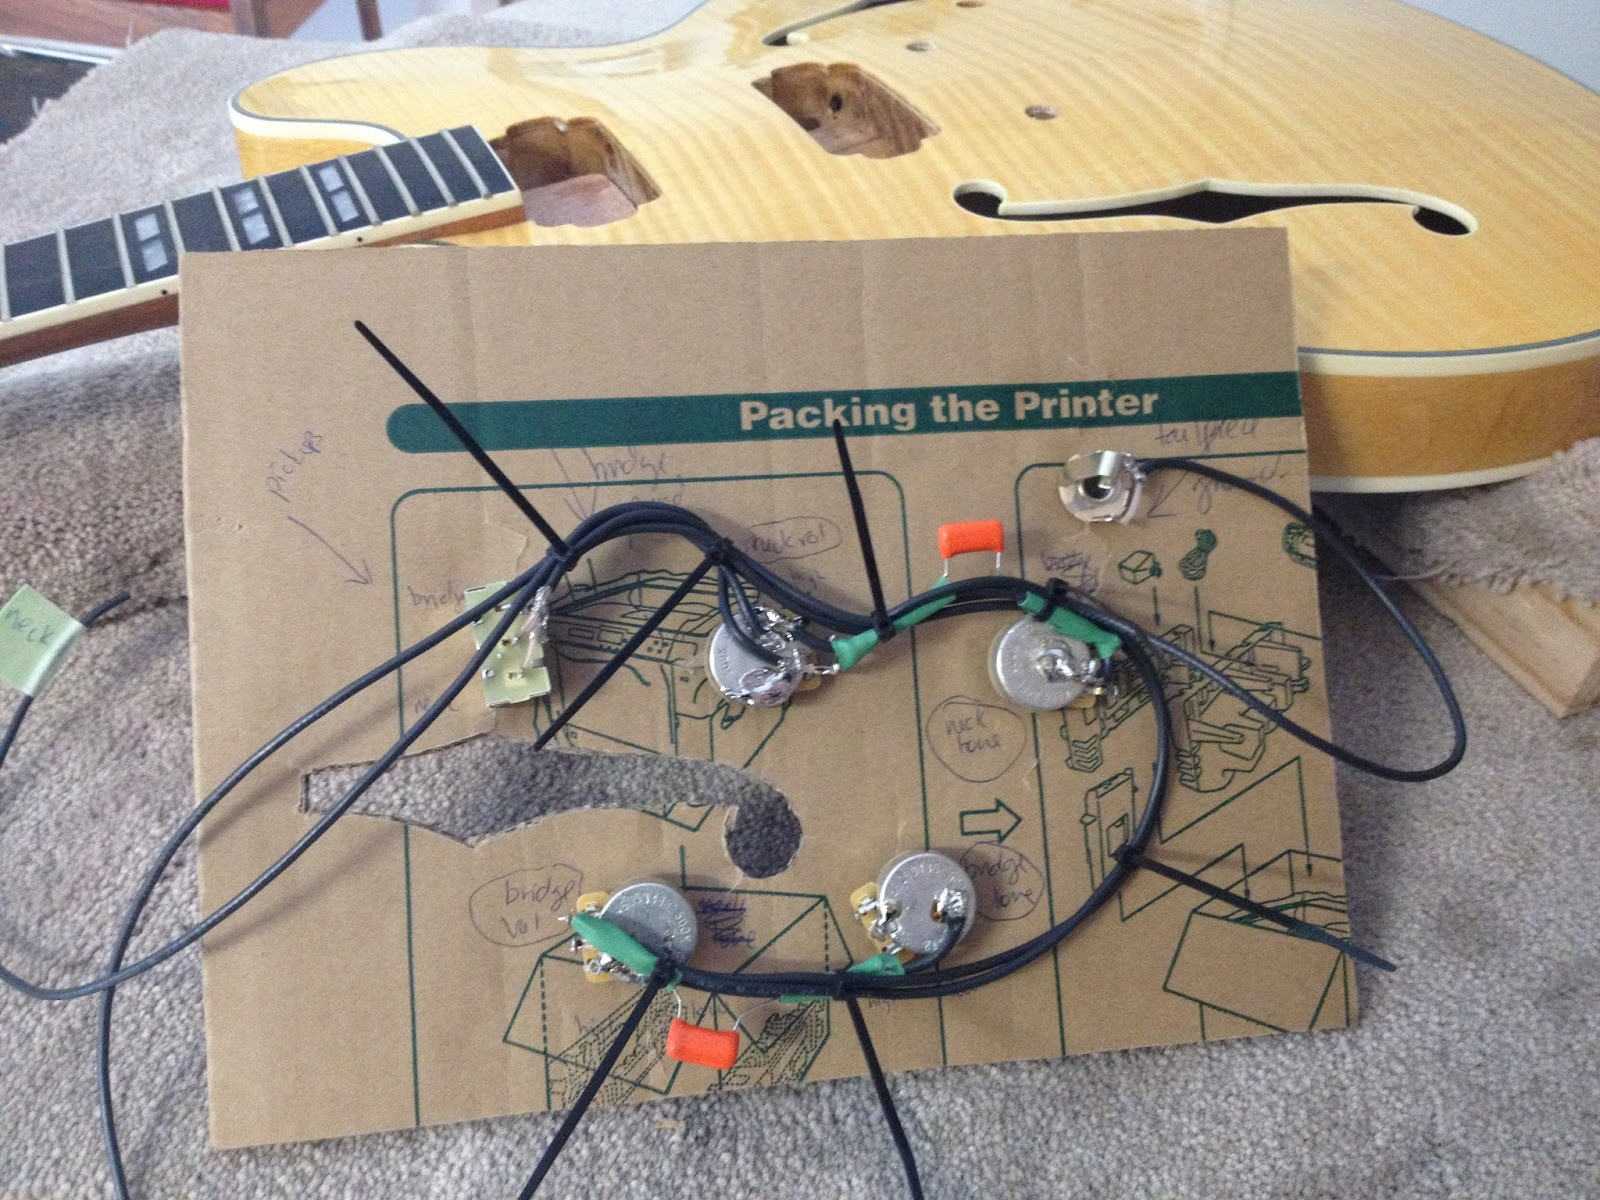 les paul wiring diagram coil tap viessmann boiler diagrams guitar kit builder 12 string 335 vintage 50s harness